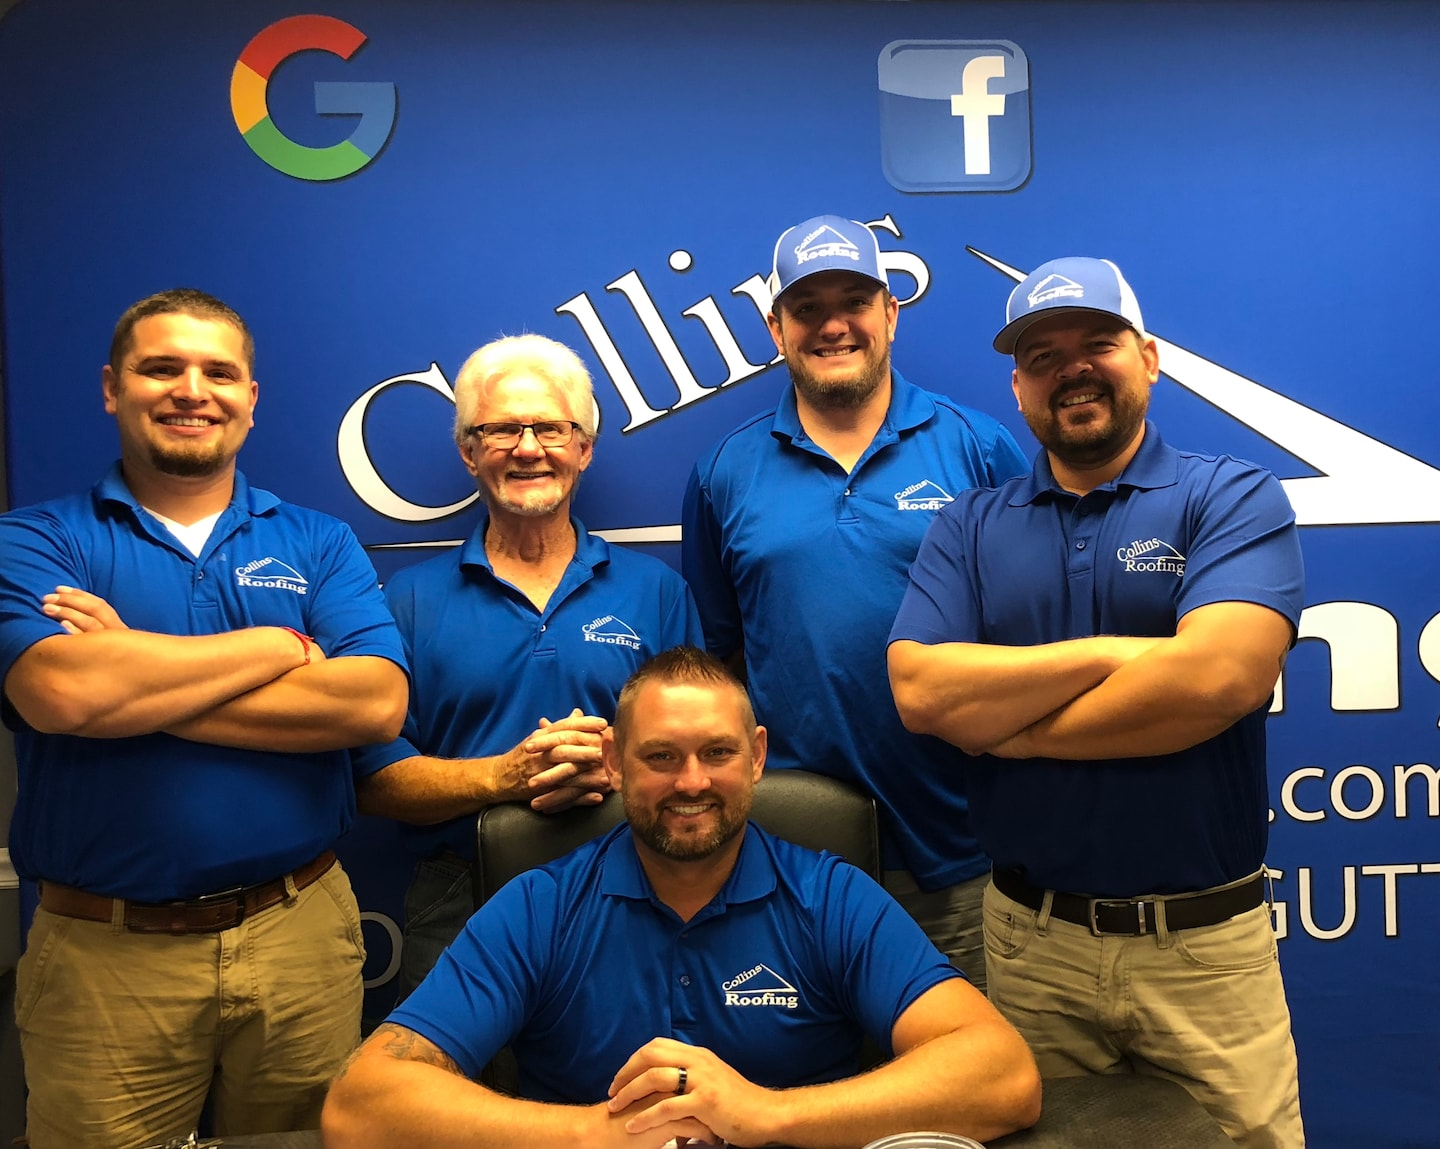 Collins Roofing